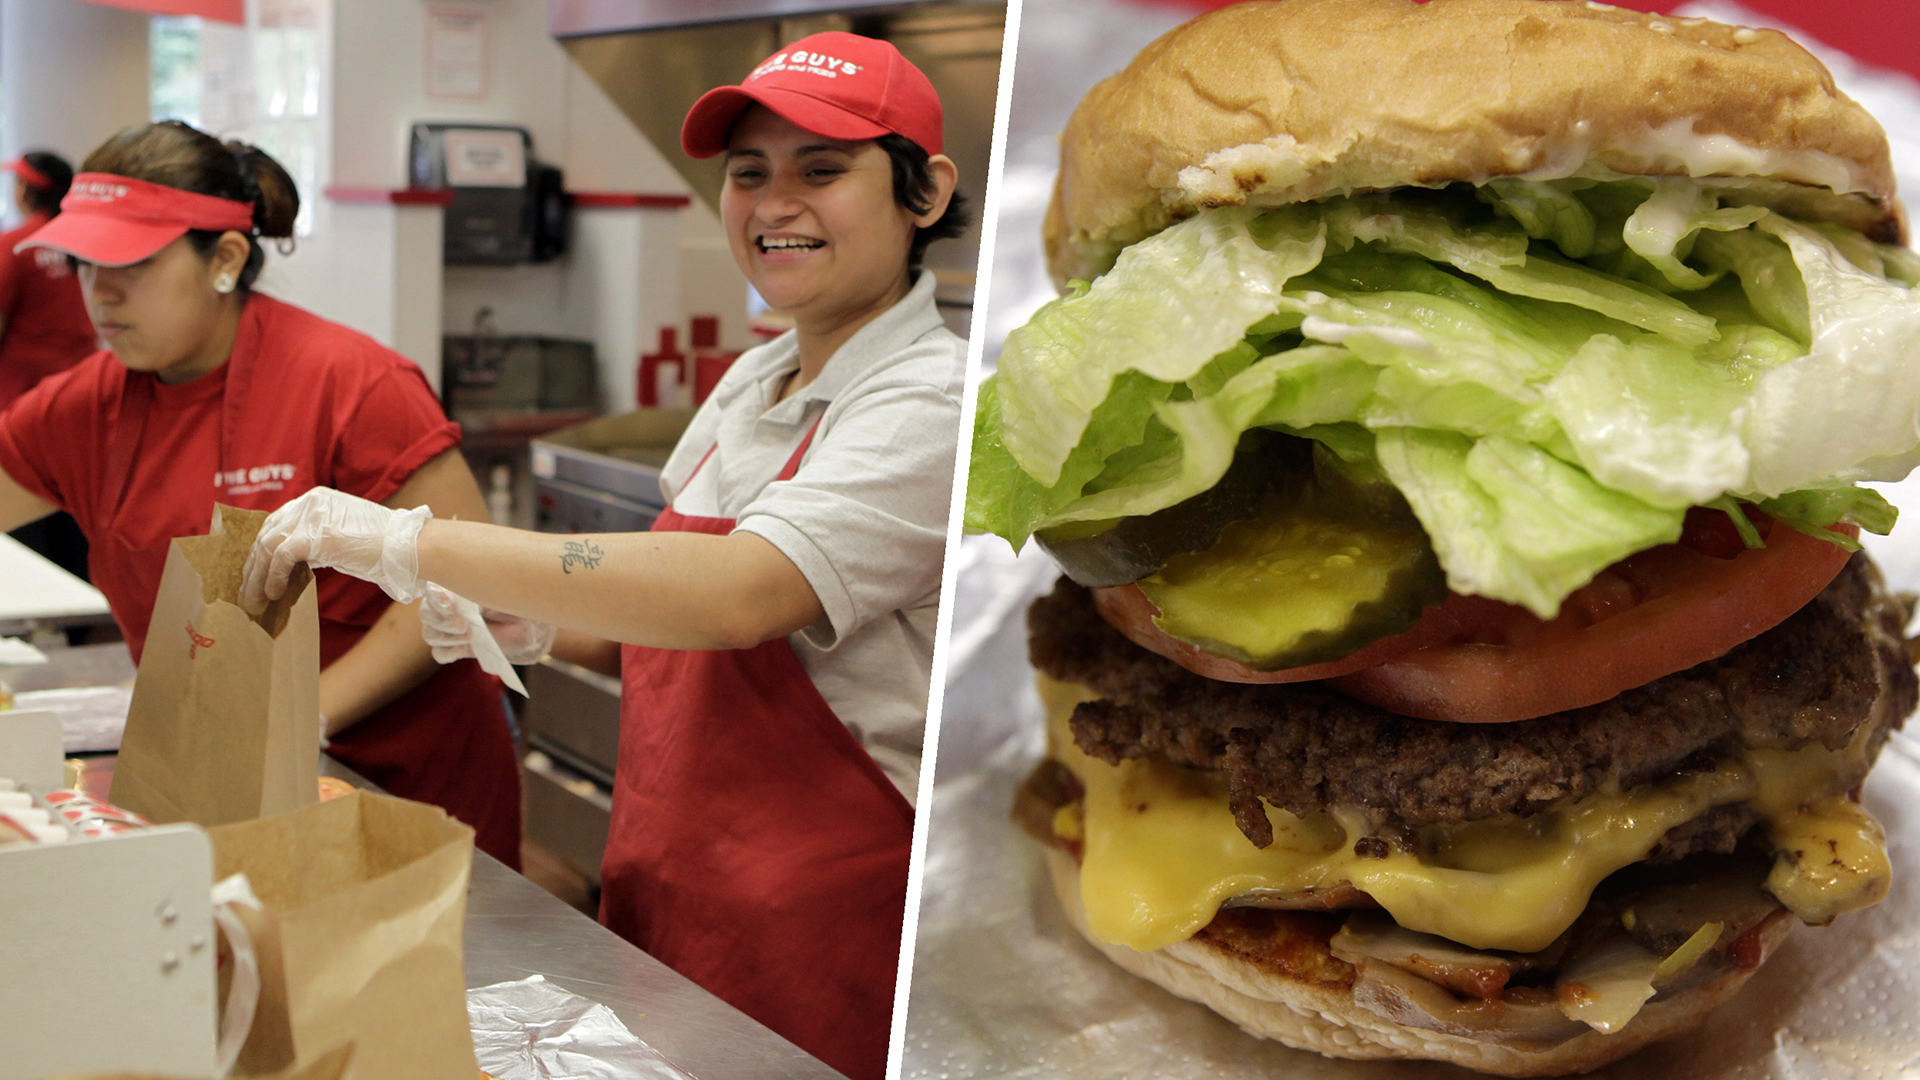 Five Guys beats In-N-Out as America's favorite burger chain